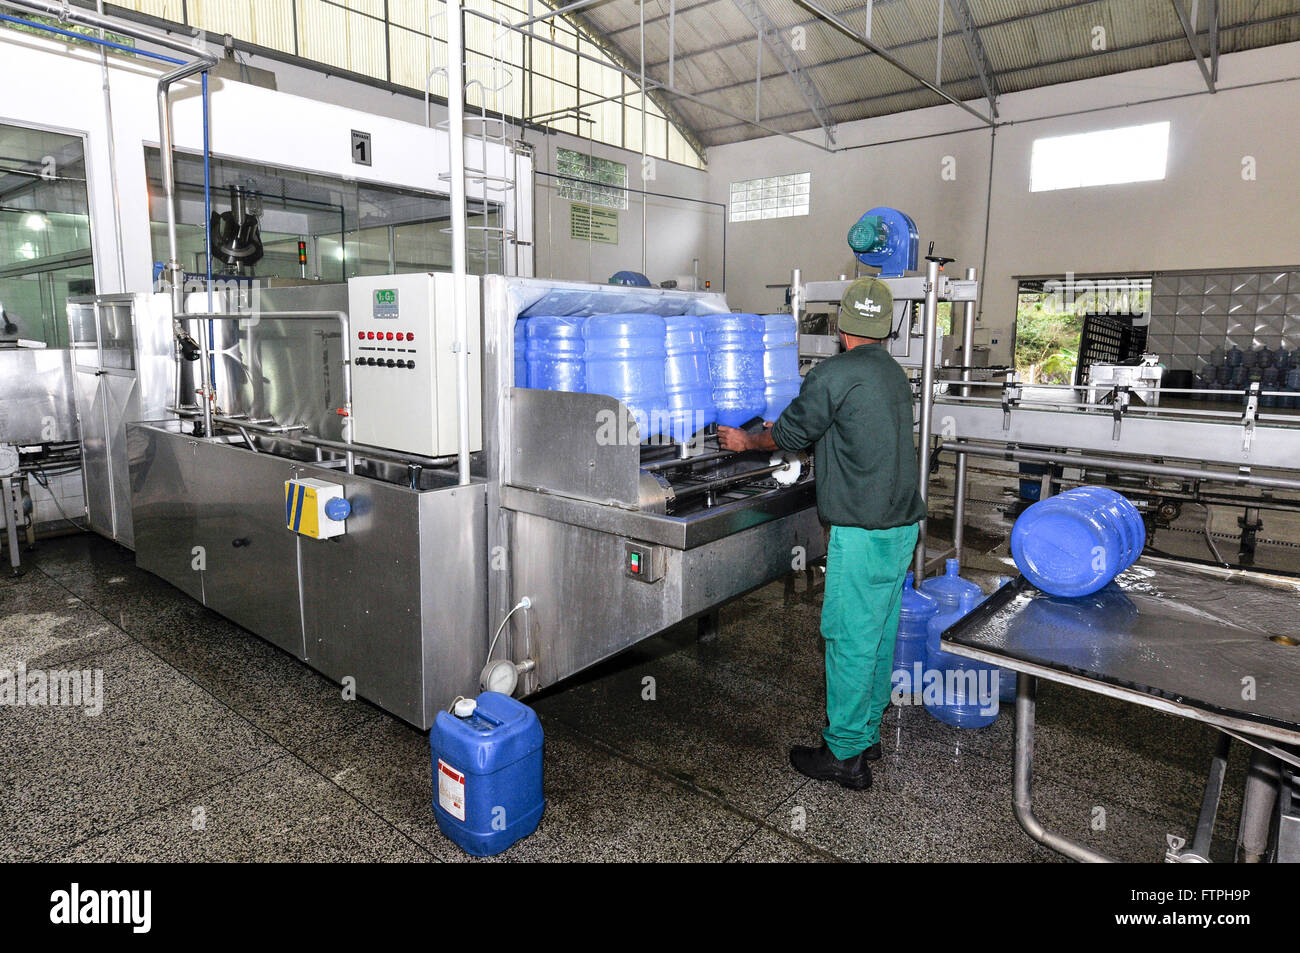 Production line for mineral water bottling company - Stock Image